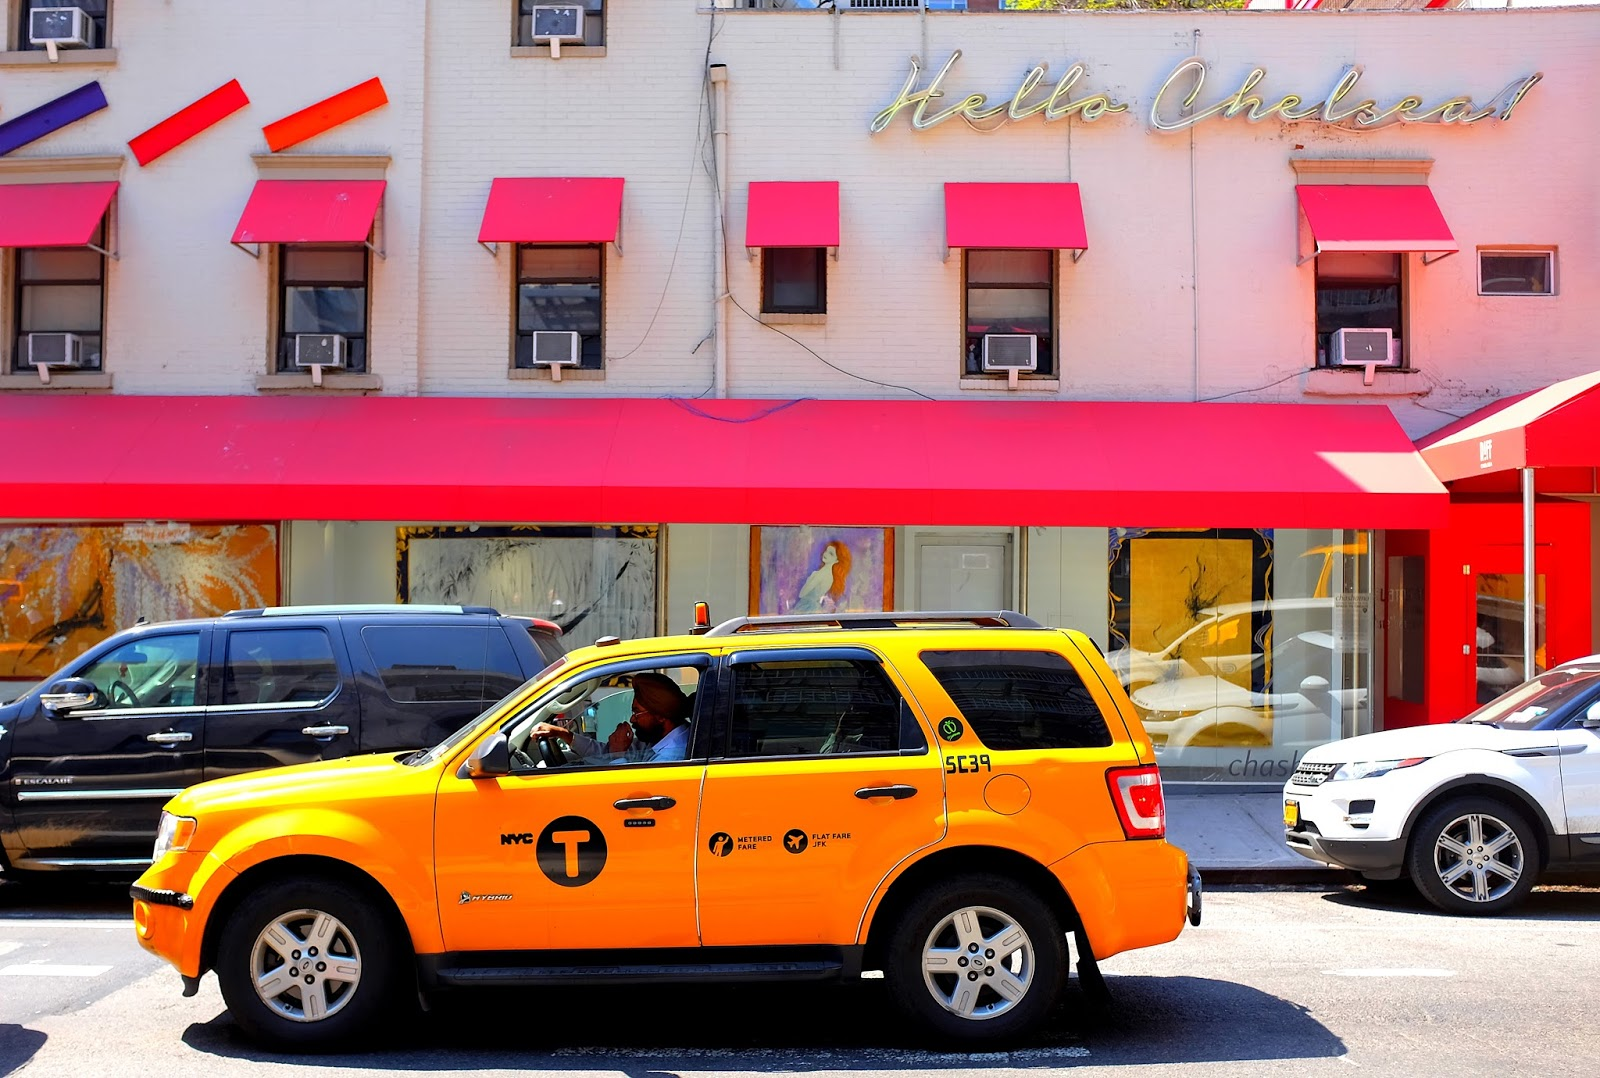 Le Chameau Bleu - New York Chelsea - Yellow Cab - Taxi